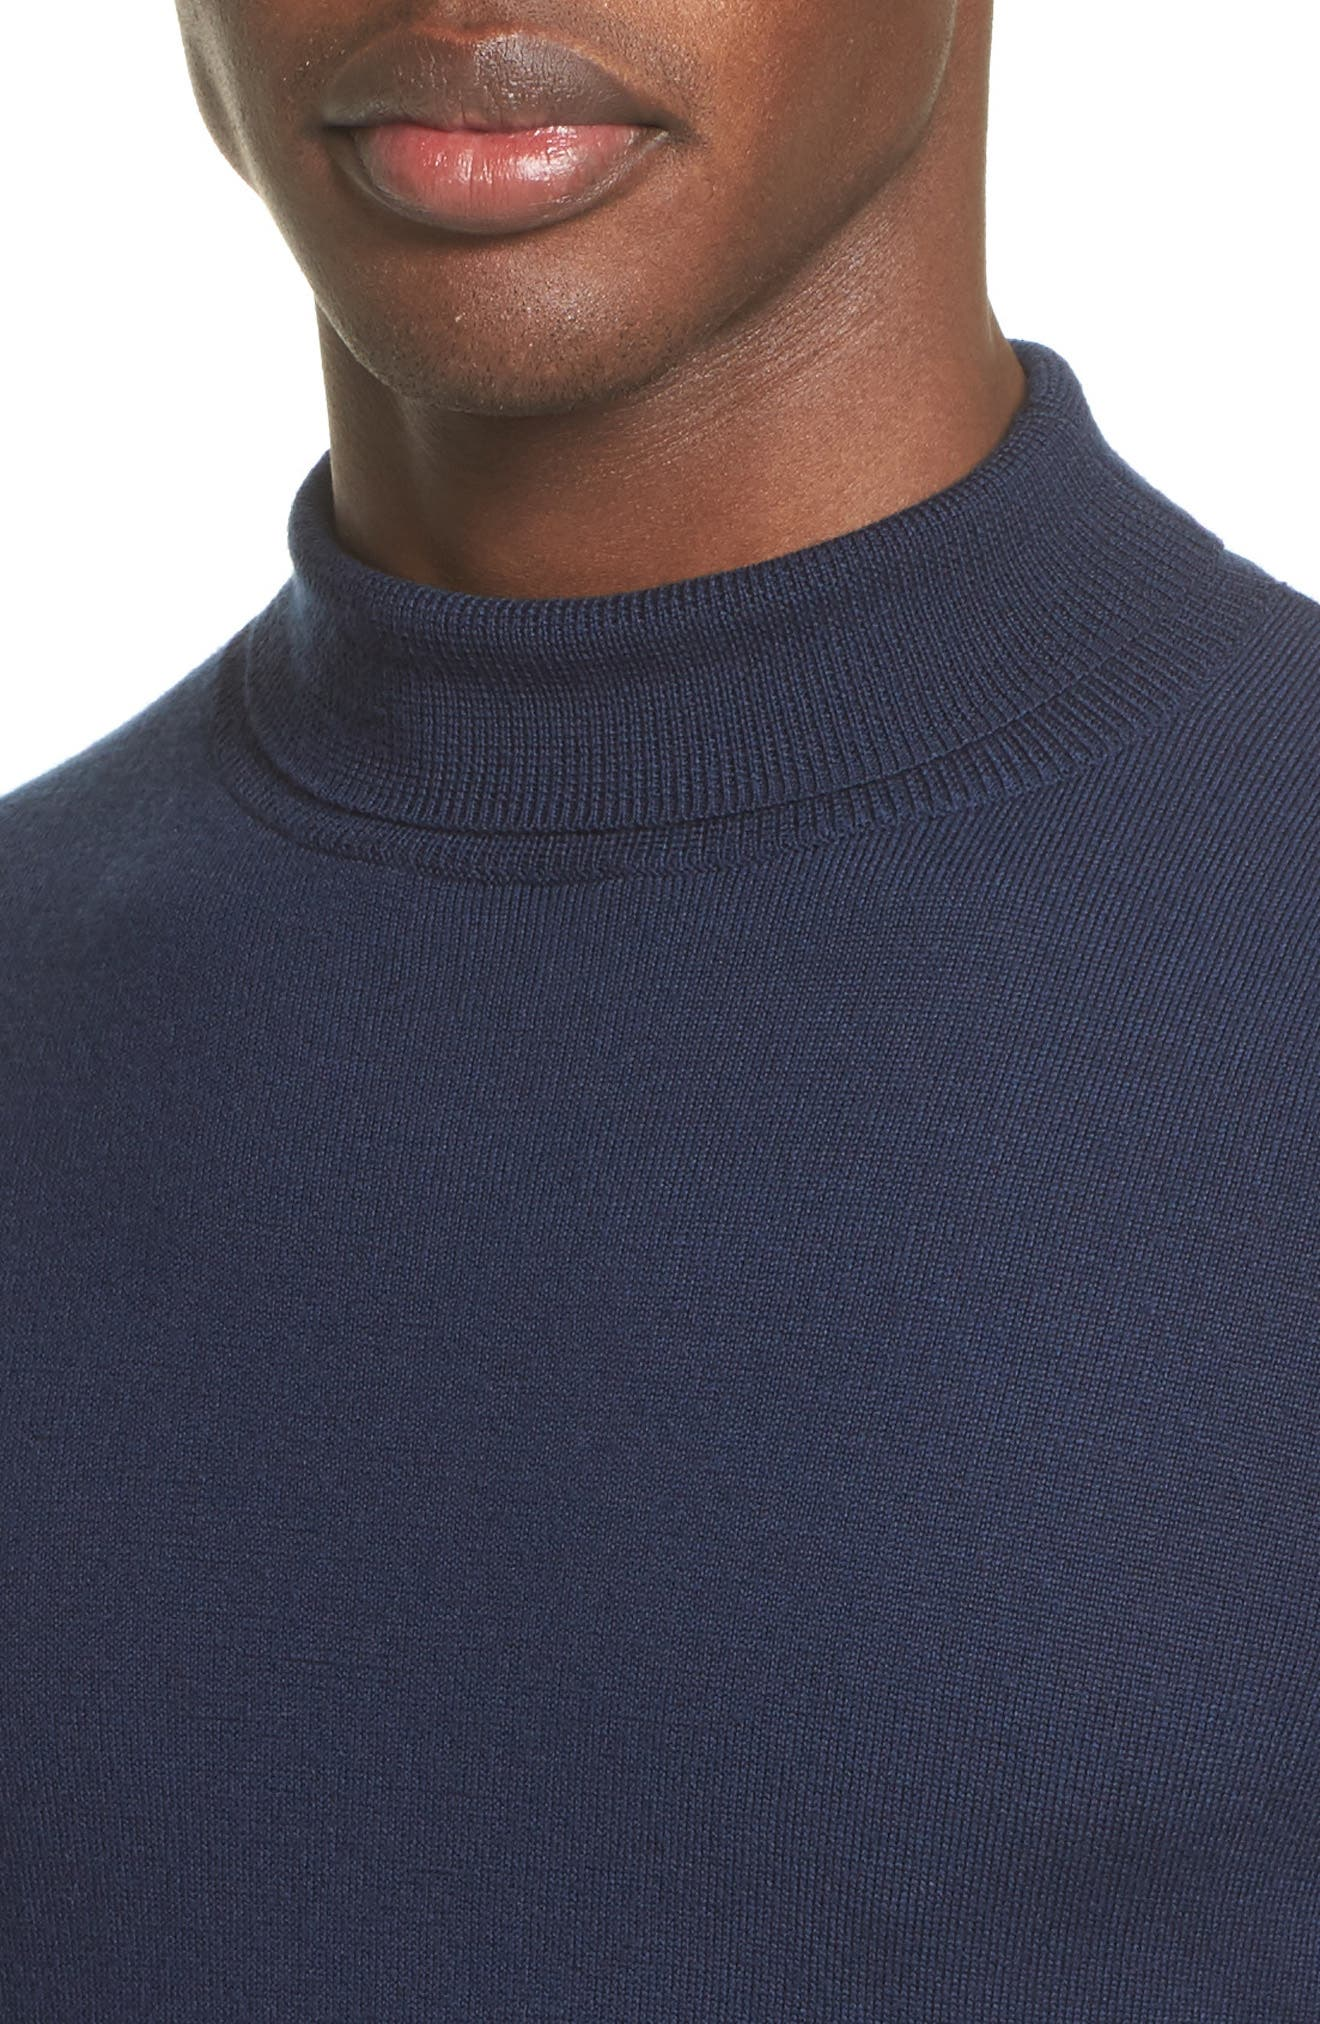 Dundee Mock Neck Sweater,                             Alternate thumbnail 4, color,                             420